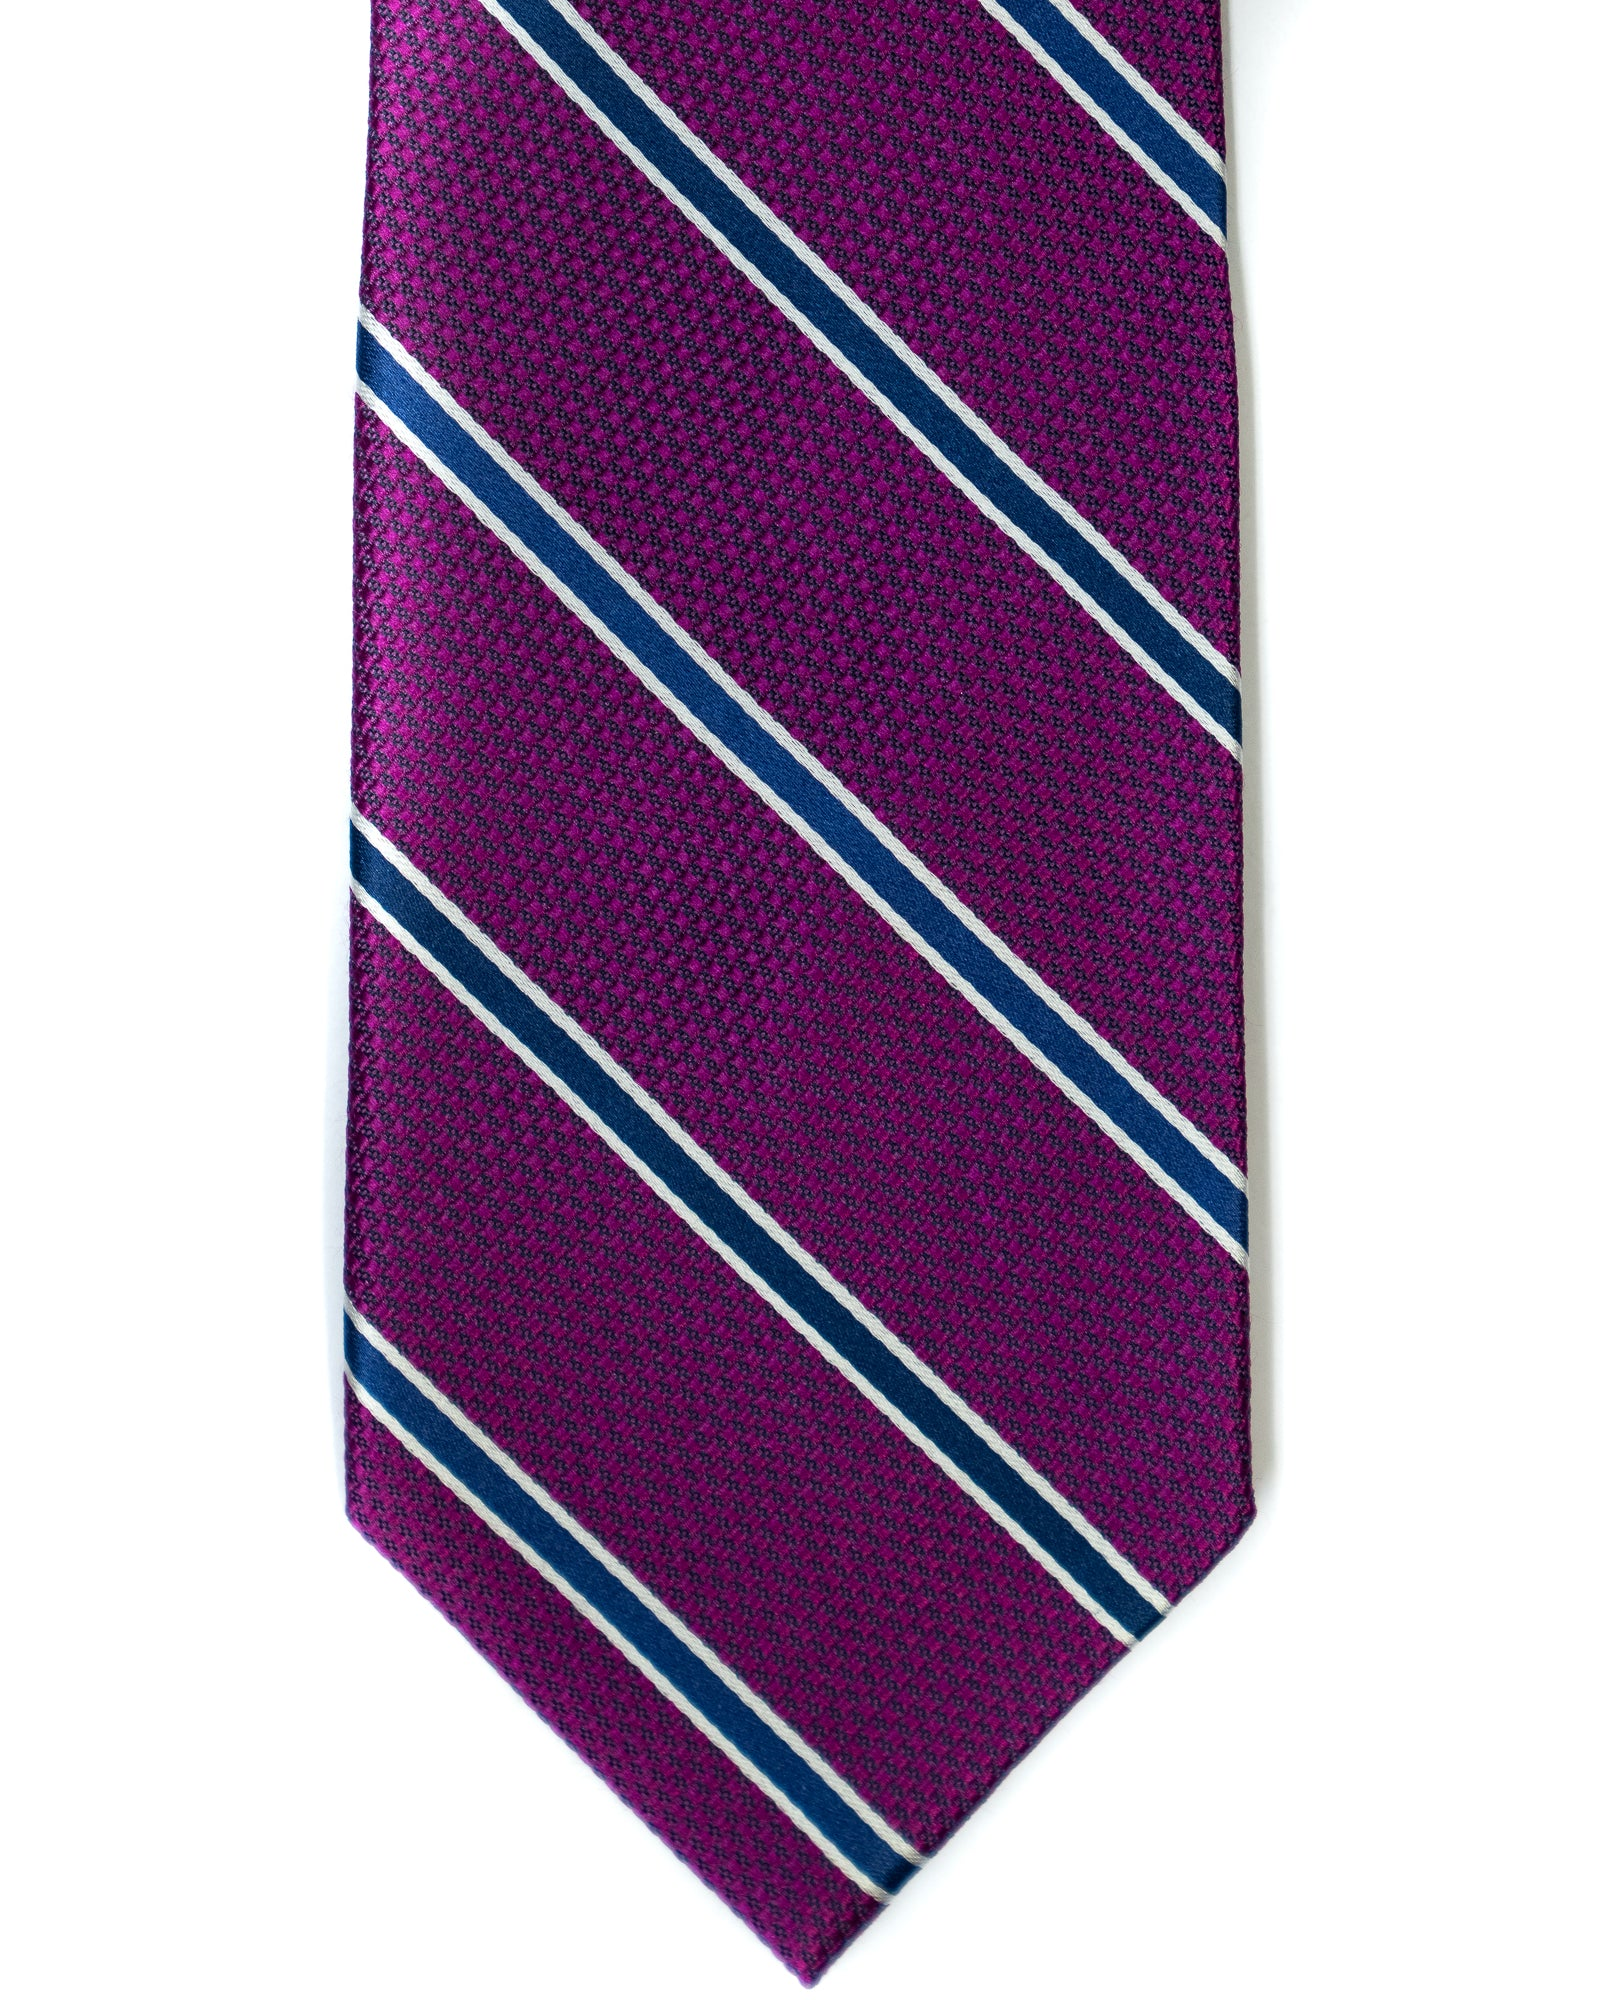 Silk Tie In Purple With Navy Stripes - Rainwater's Men's Clothing and Tuxedo Rental